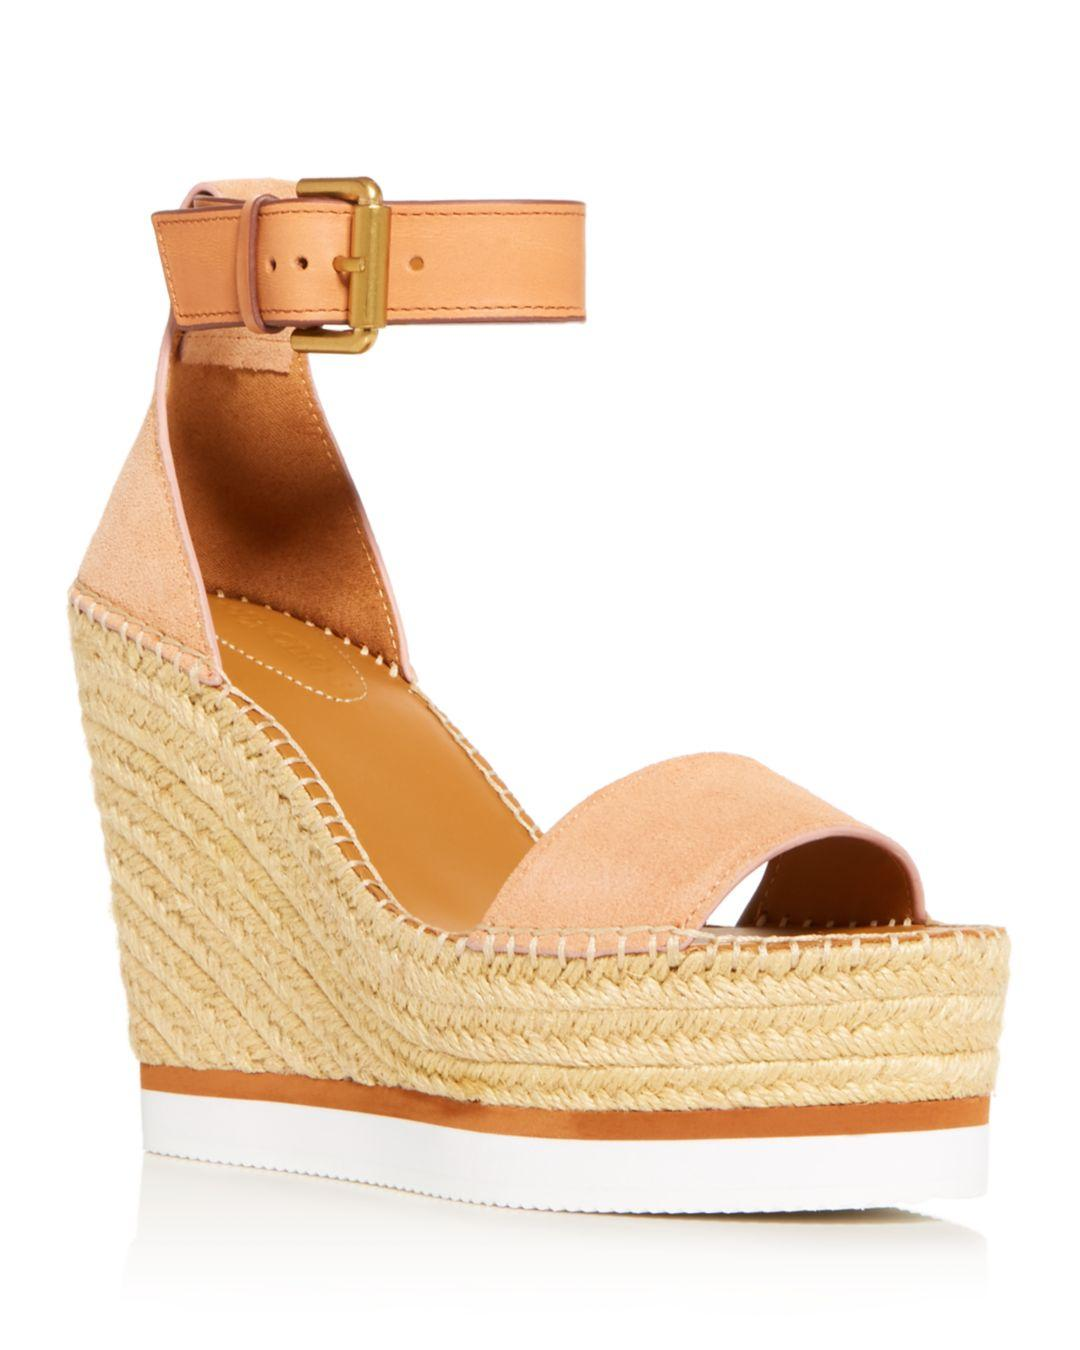 896af35f9214 See By Chloé - Multicolor Glyn Leather Espadrille Platform Wedge Ankle  Strap Sandals - Lyst. View fullscreen